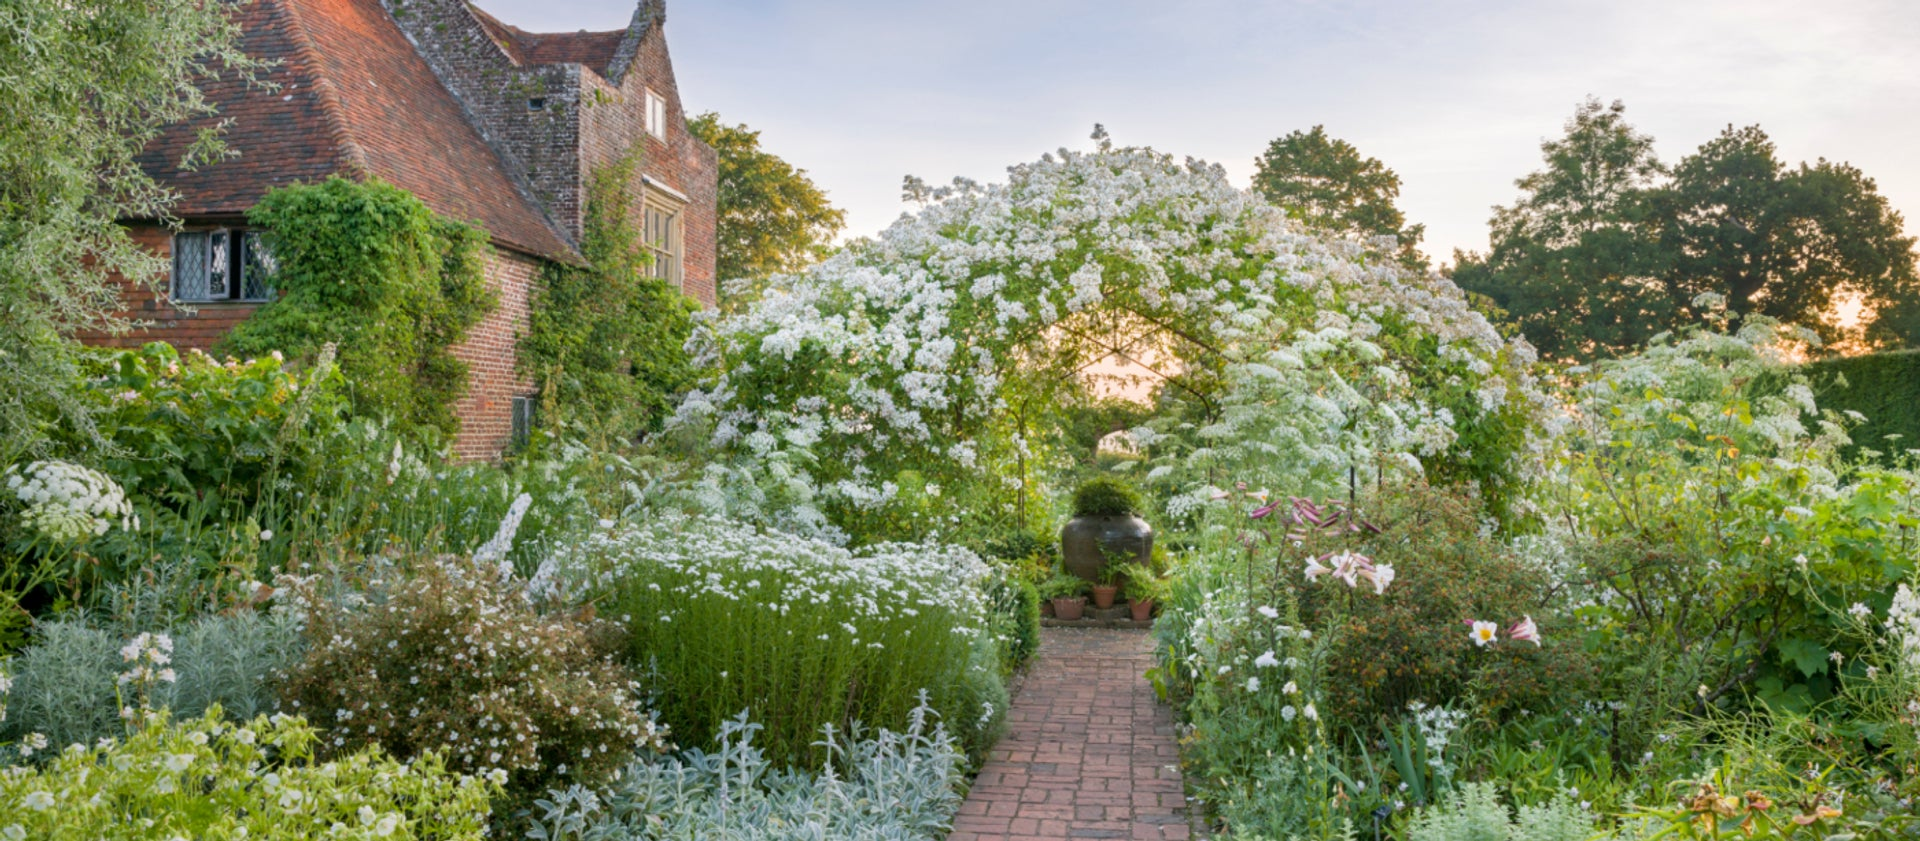 An Ode To The English Garden By Georgia Grace